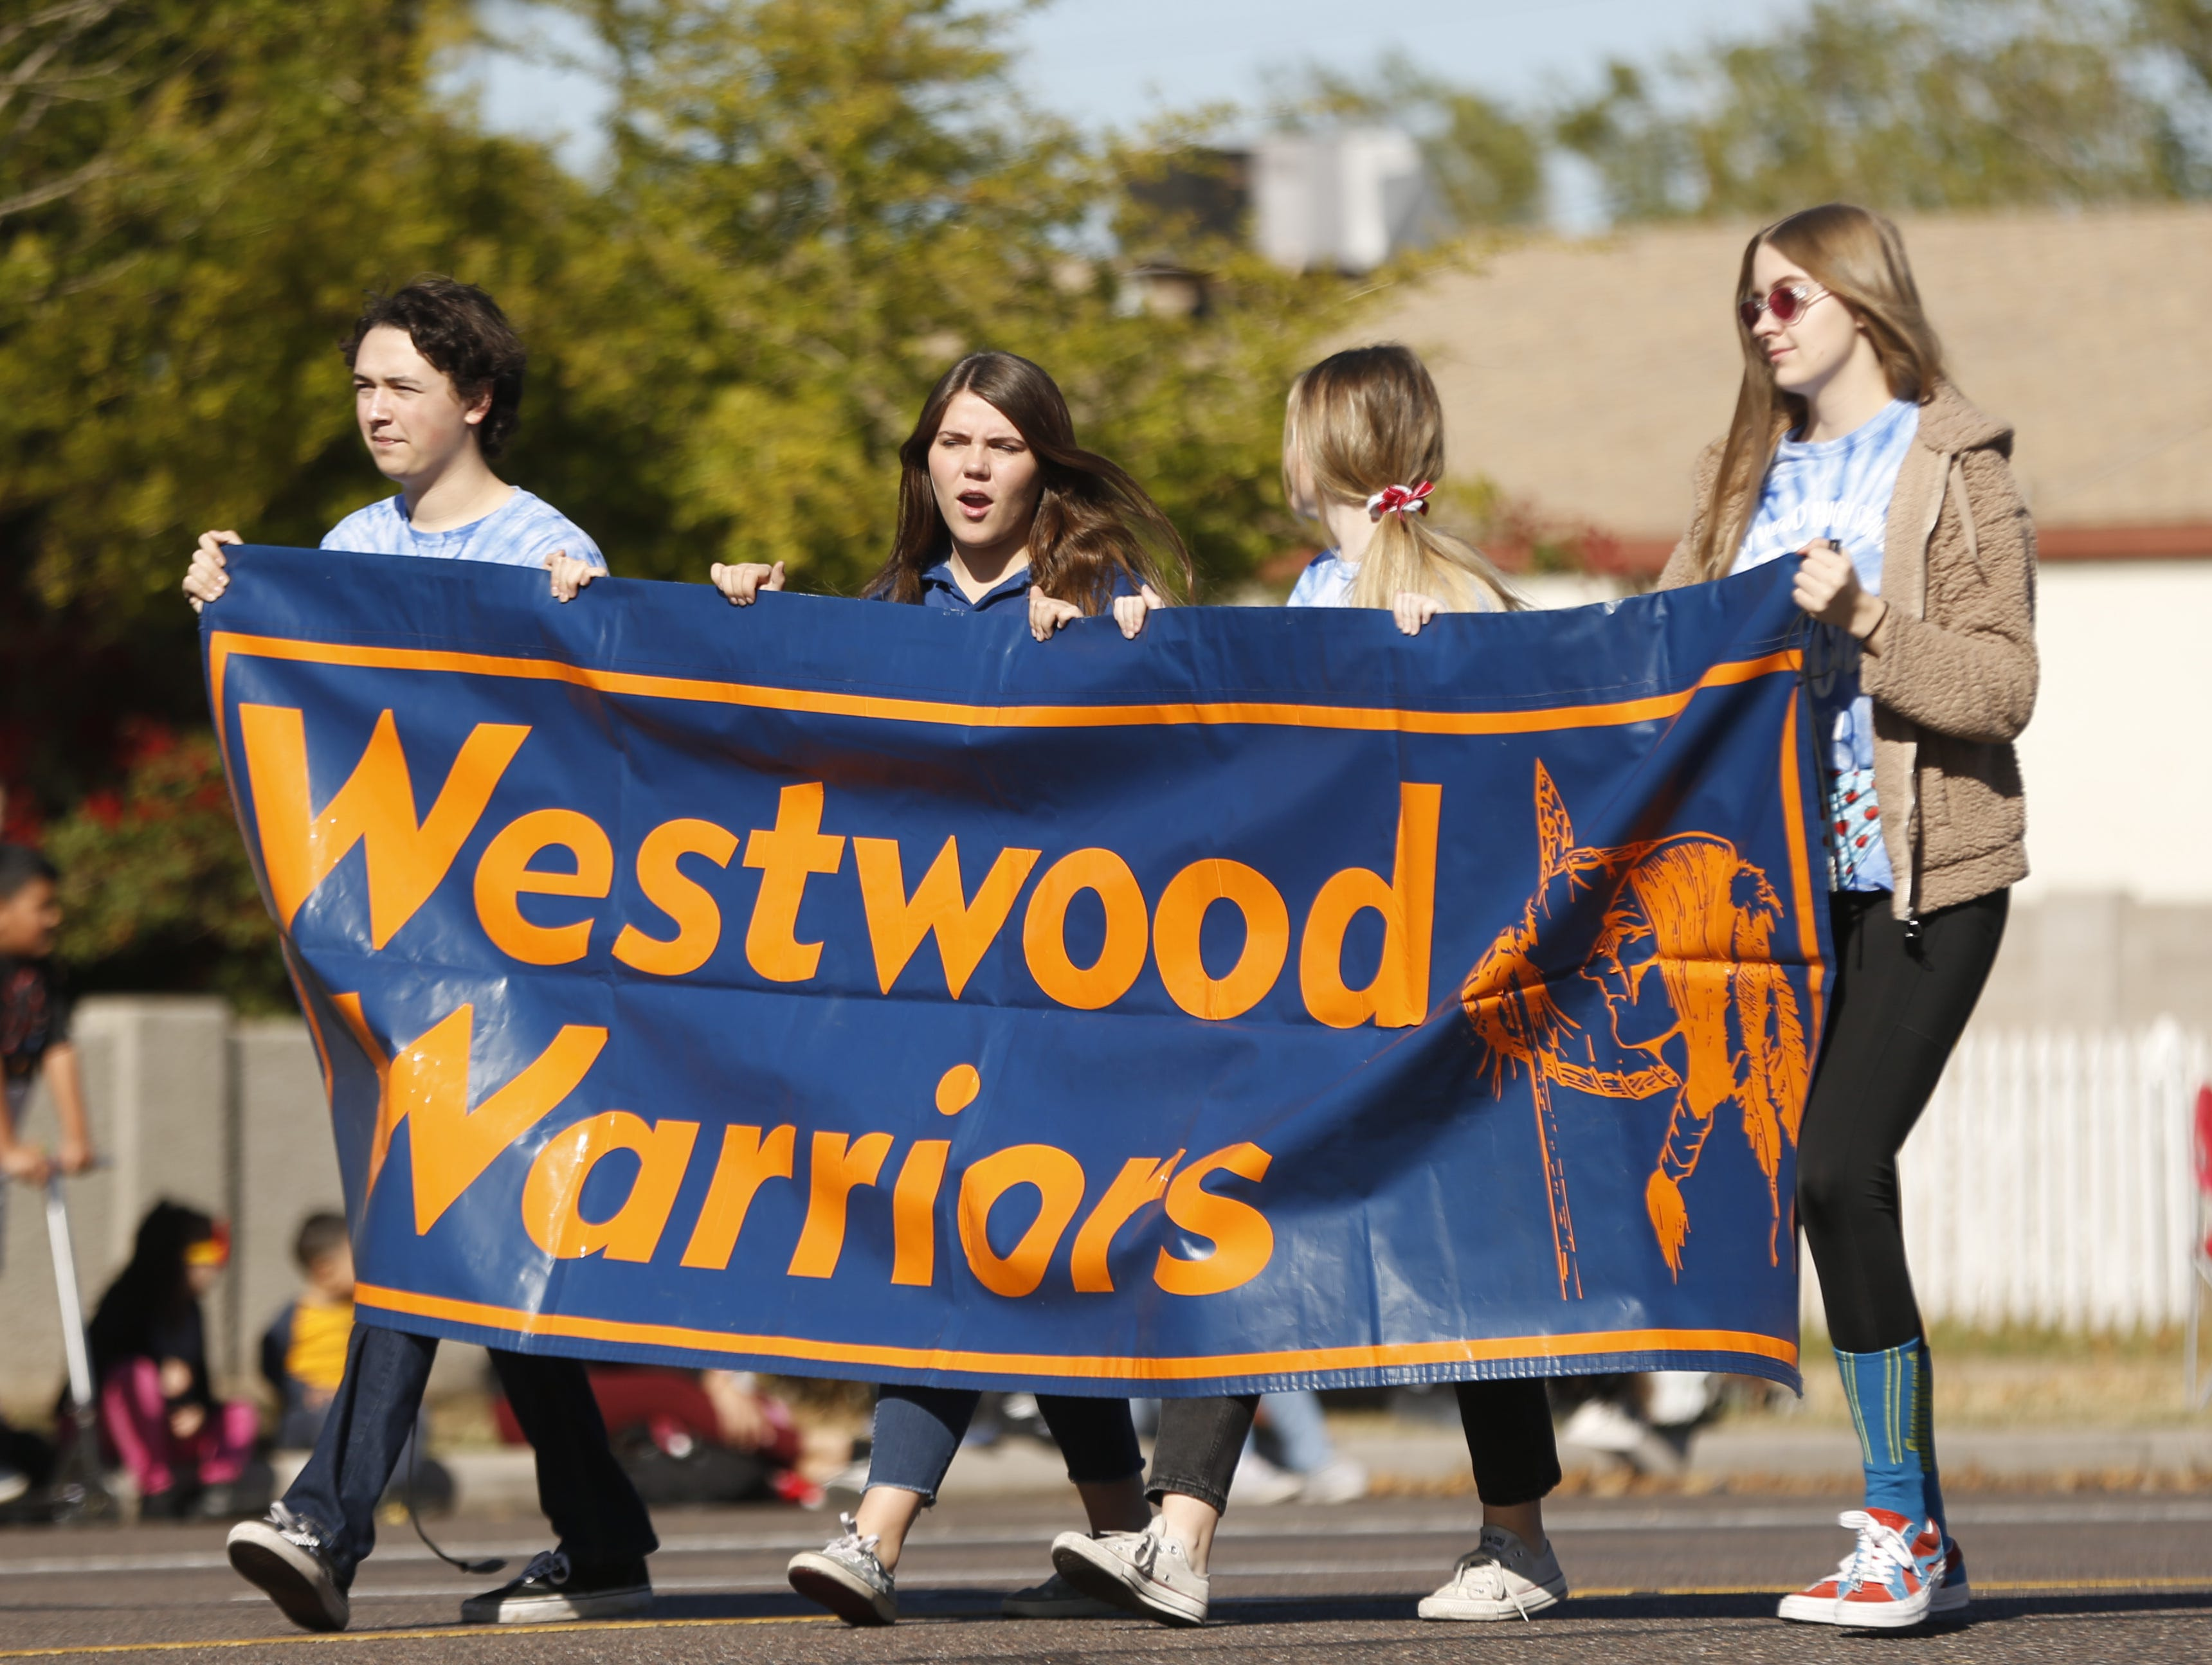 Westwood students make their way down the street during the MLK Day Parade in Mesa, Ariz. on January 21, 2019.